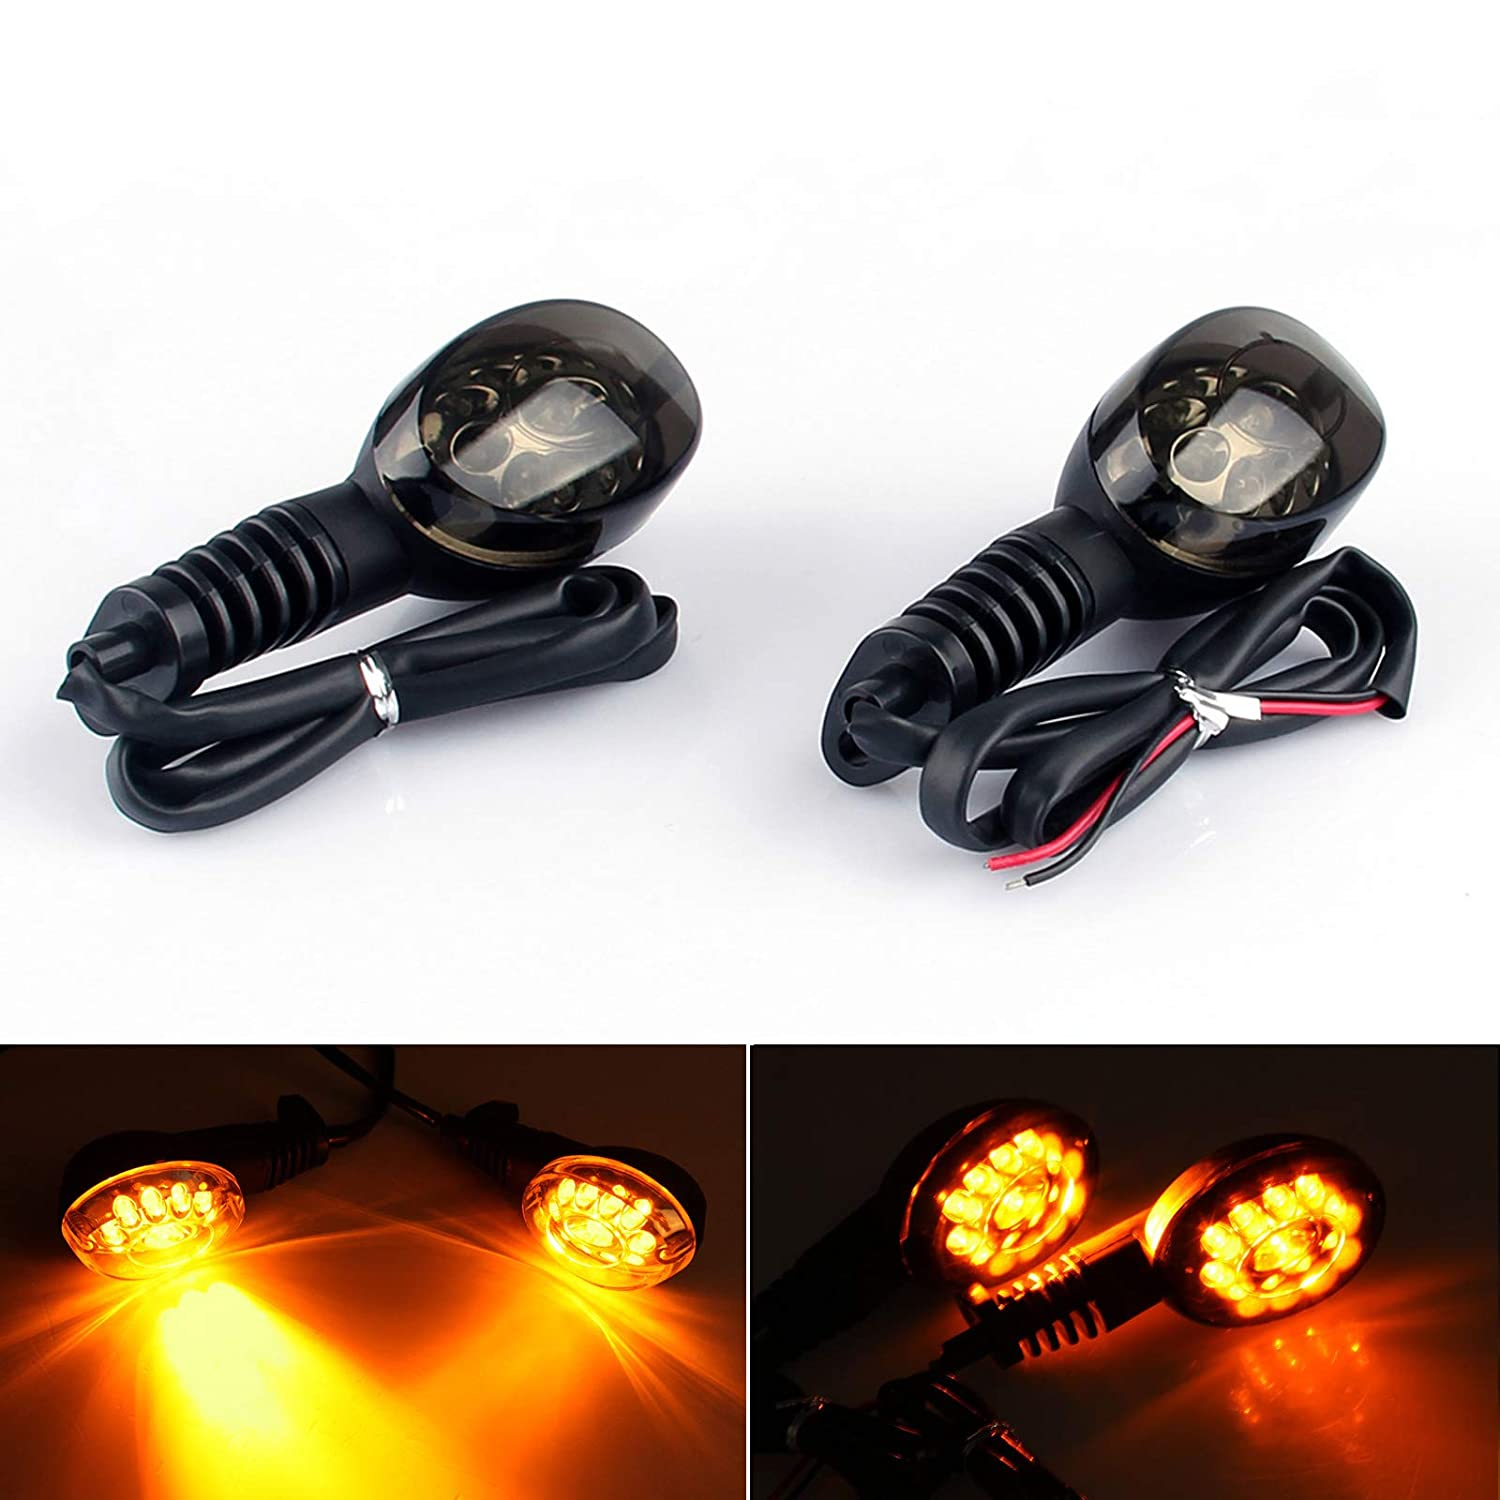 Areyourshop Front Rear LED Turn Signals Blinker Indicator Amber for Kawasaki Ninja 250R 2008-2012 Smoke